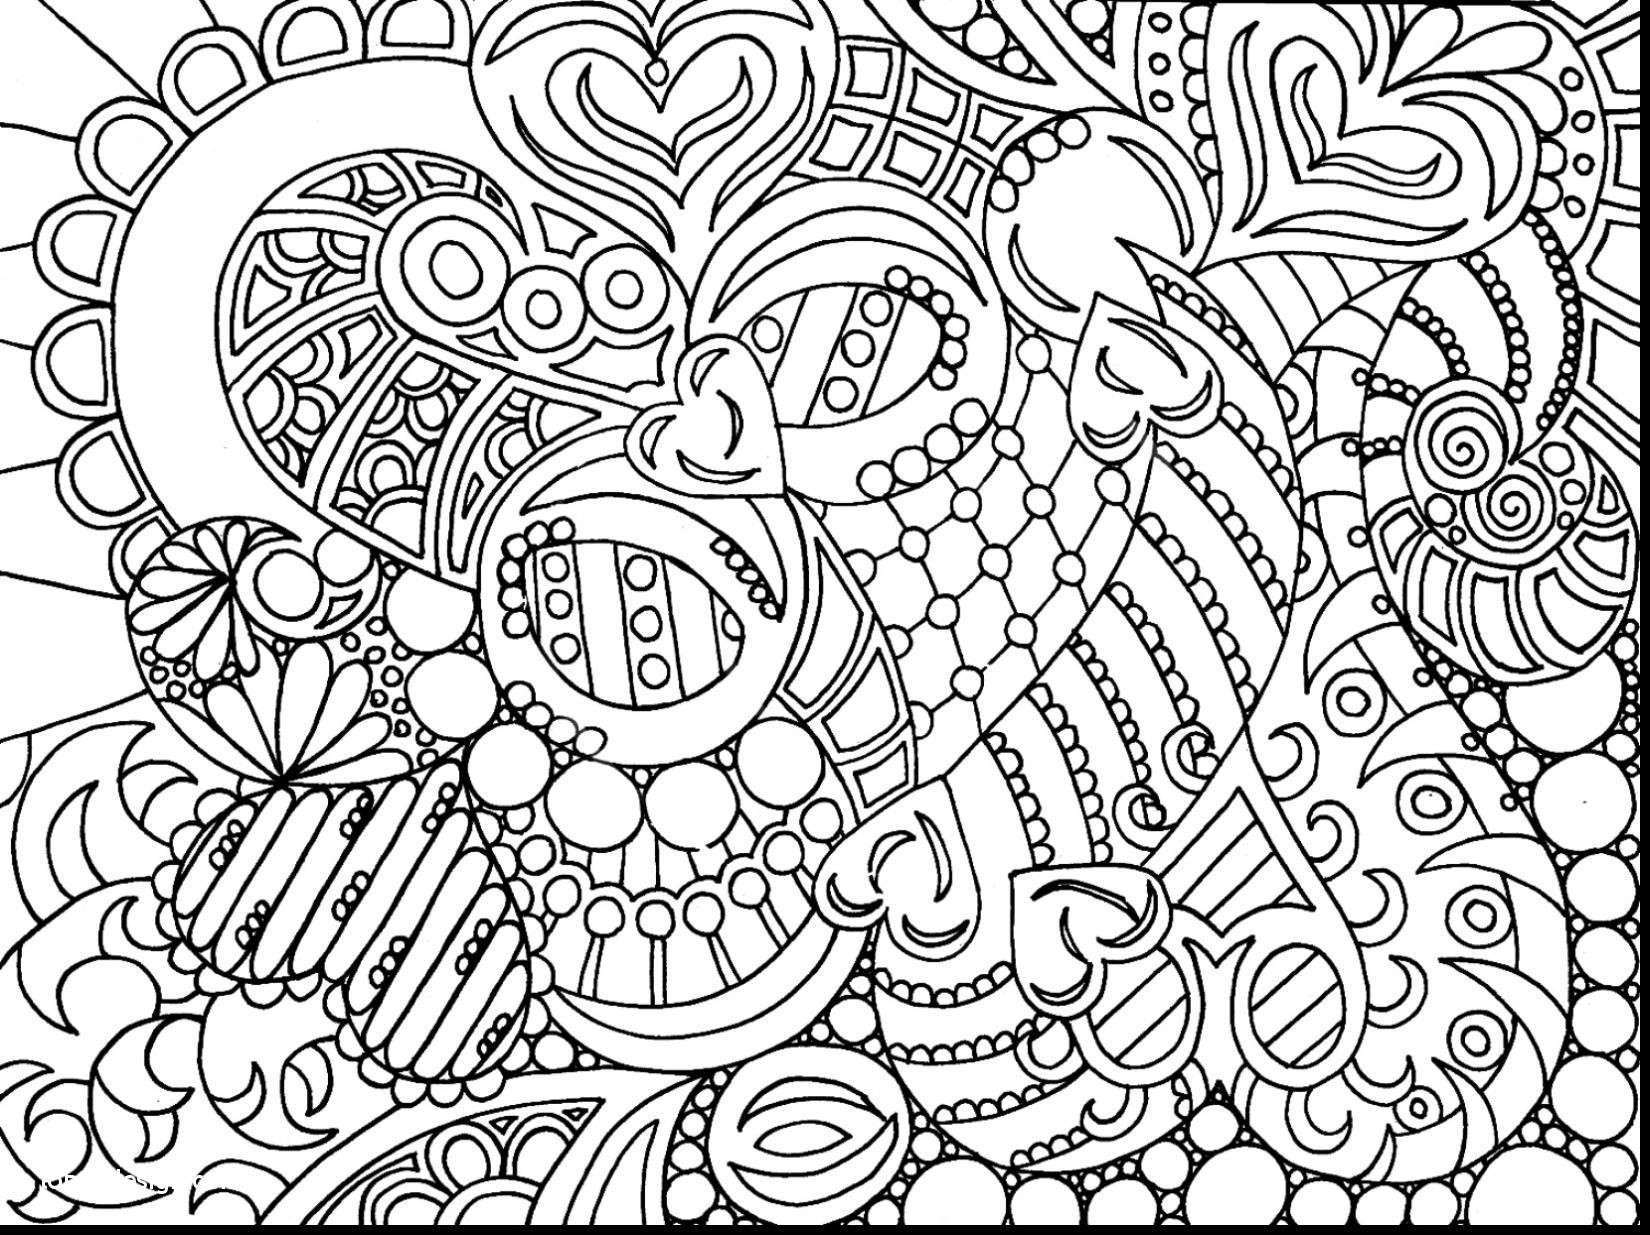 color pages for teens coloring pages for teens coloringrocks pages teens for color